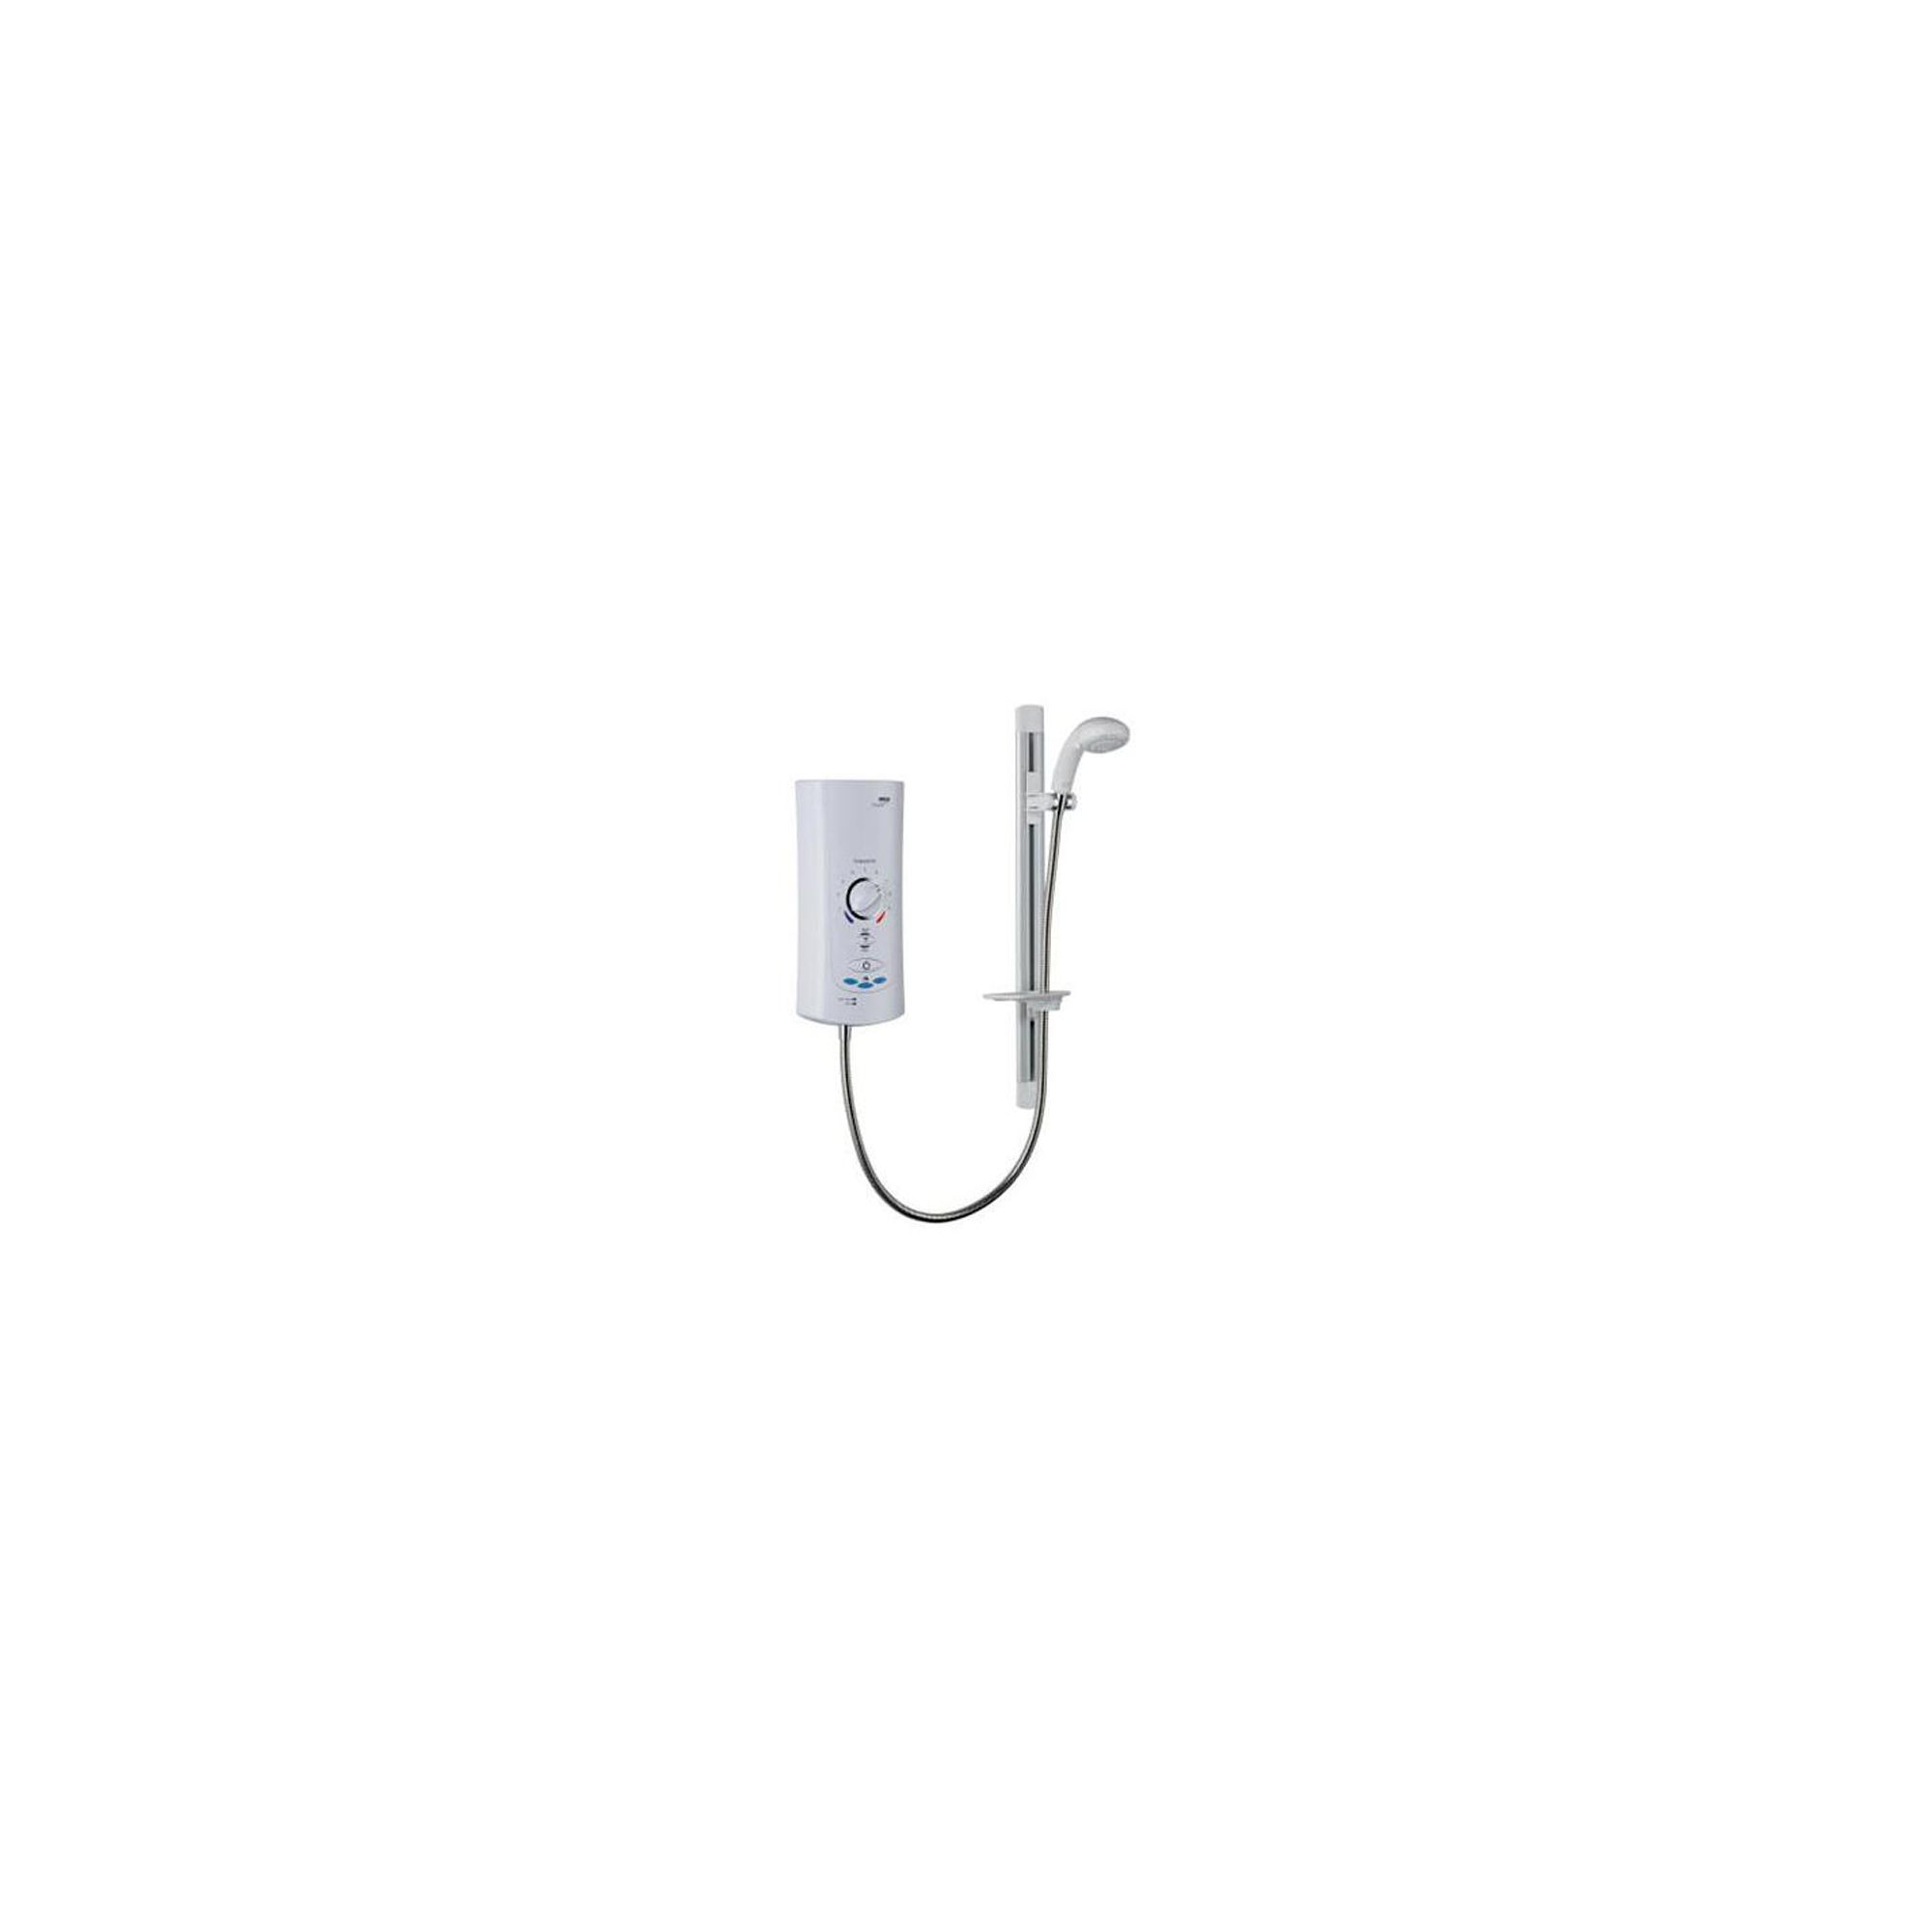 Mira Advance ATL Memory 9.0 kW Electric Shower, Handset, White/Chrome at Tesco Direct